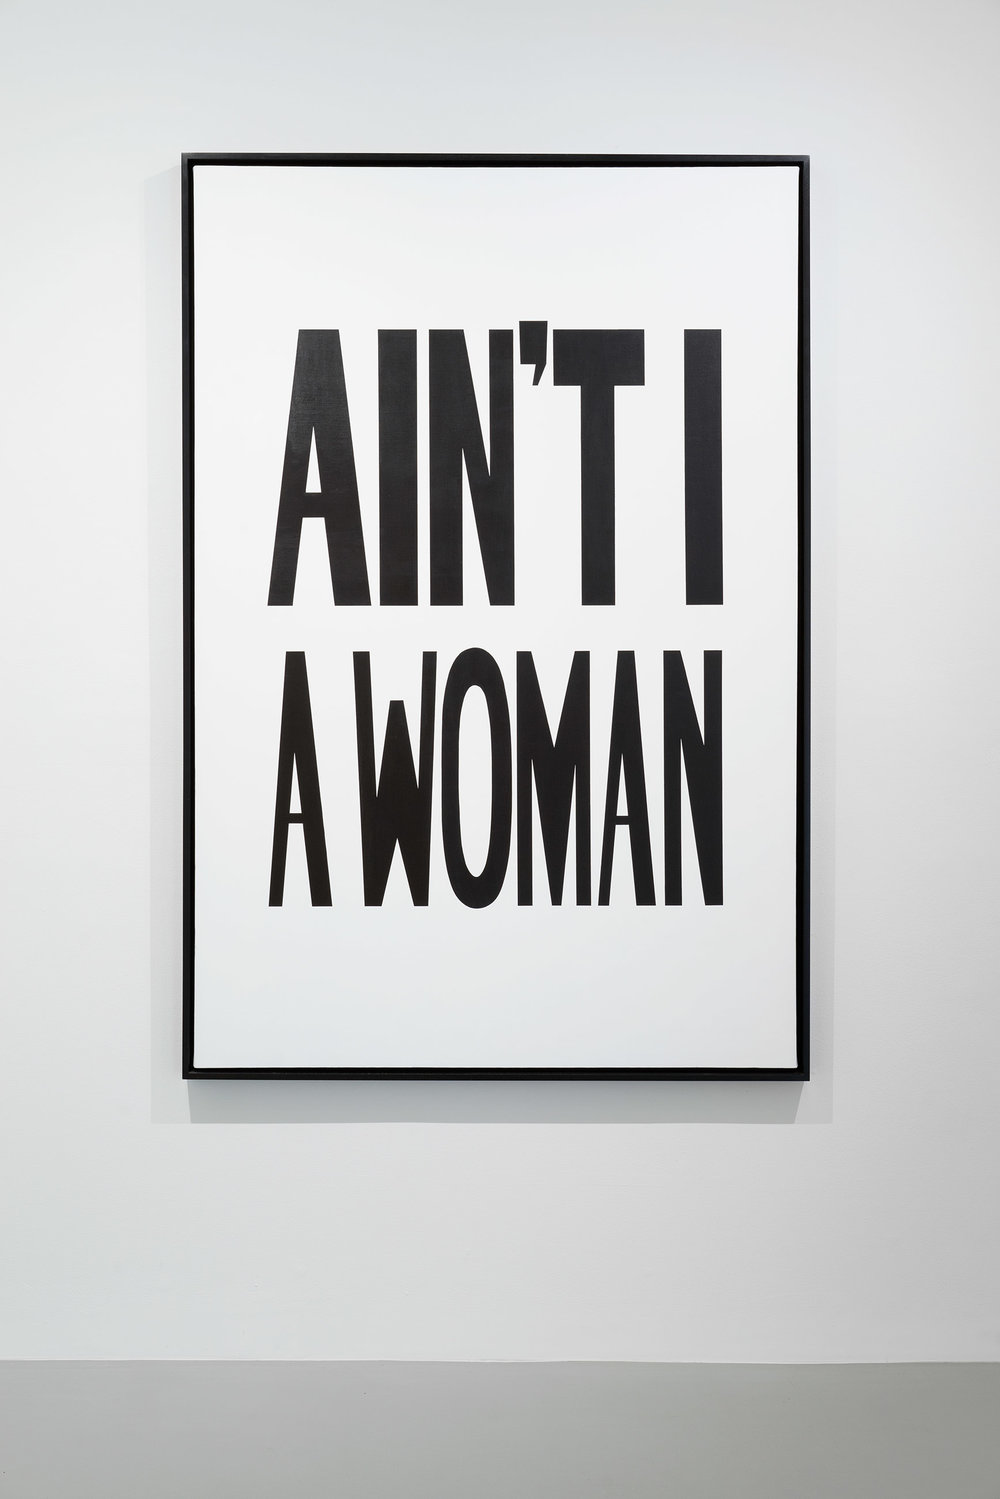 Hank Willis Thomas, Ain't I A Woman, 2013, Liquitex on canvas, installation view. STUDIO LHOOQ/COURTESY THE ARTIST AND JACK SHAINMAN GALLERY, NEW YORK